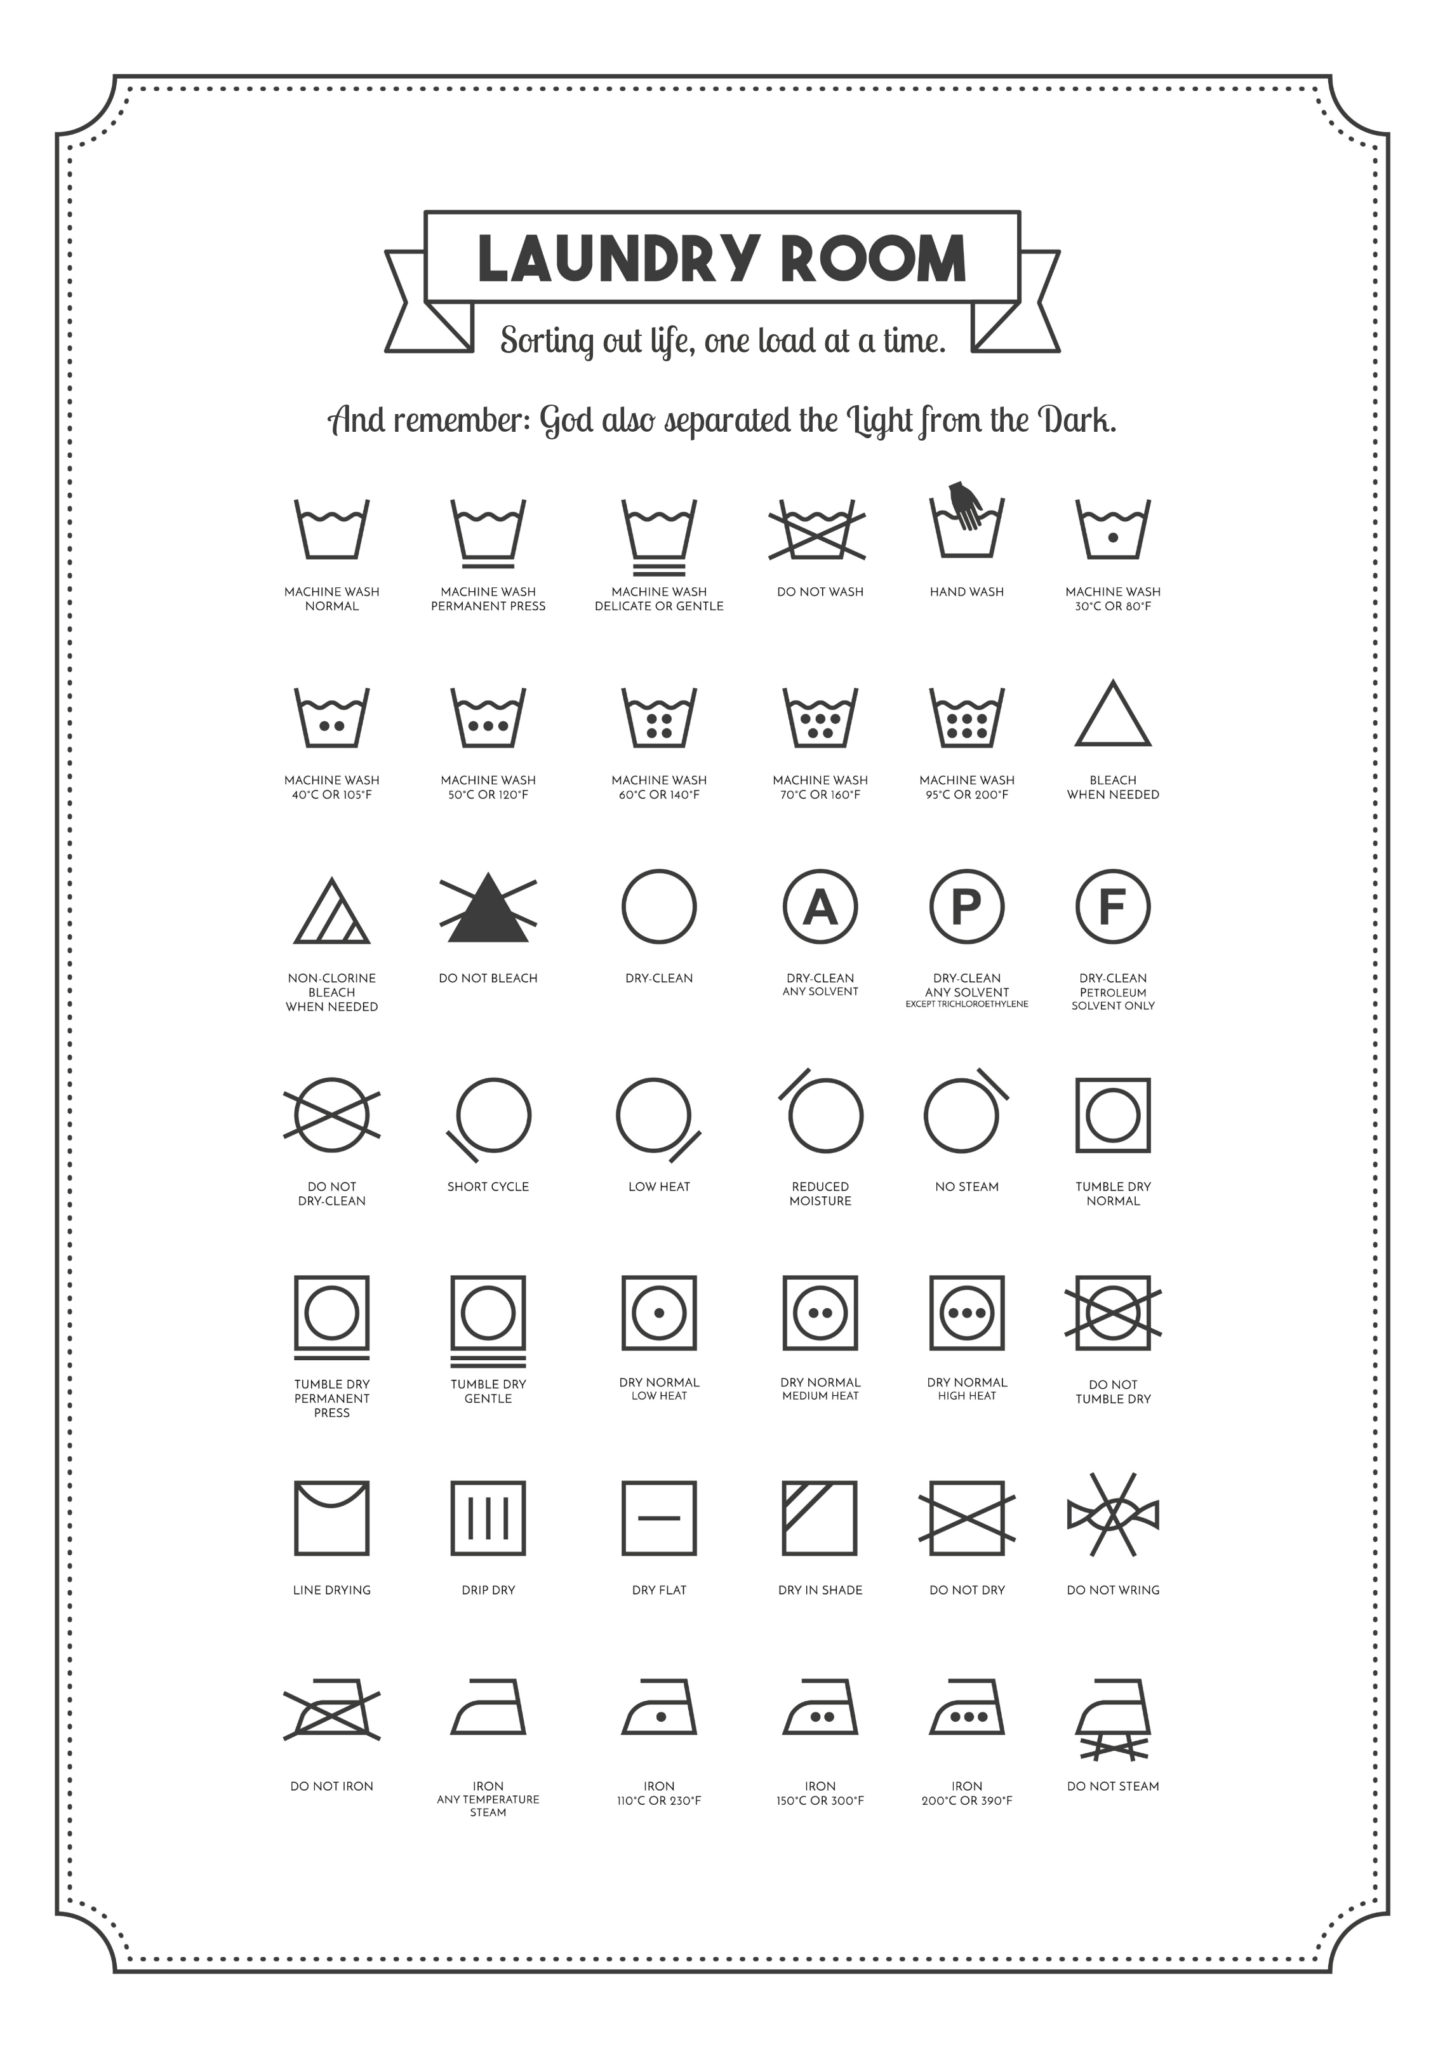 picture about Laundry Symbols Printable titled Laundry House Printables Whats up Fagans?